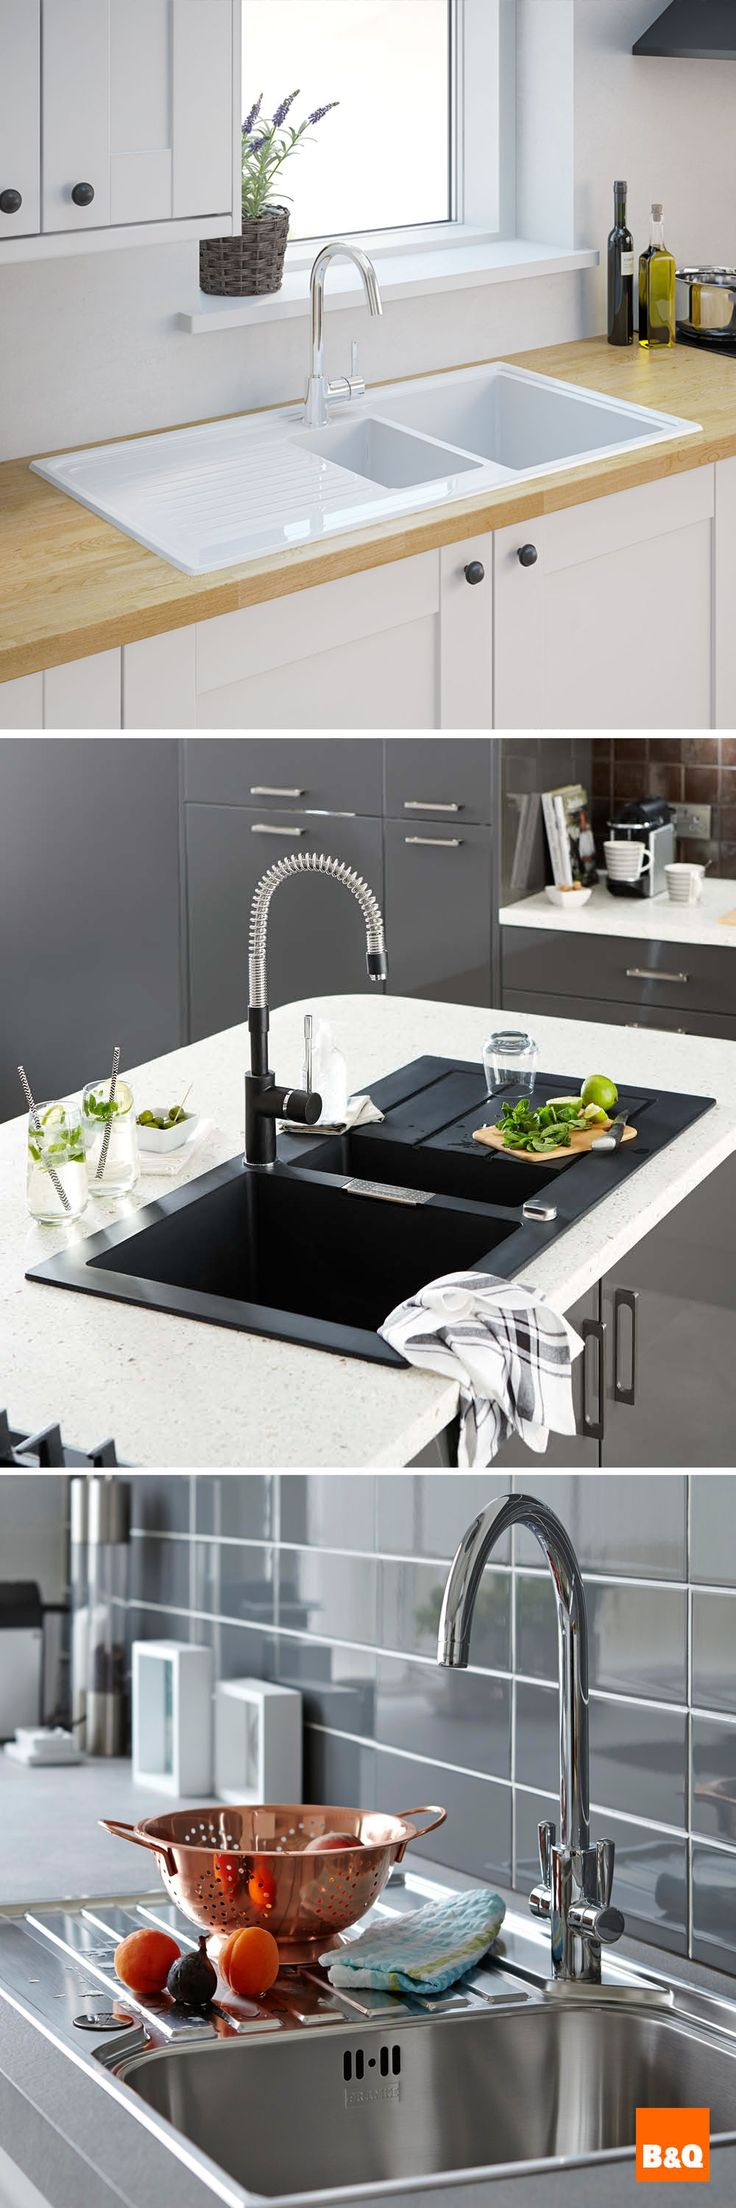 Update your kitchen by simply replacing your sink with a stylish new one!  Change the